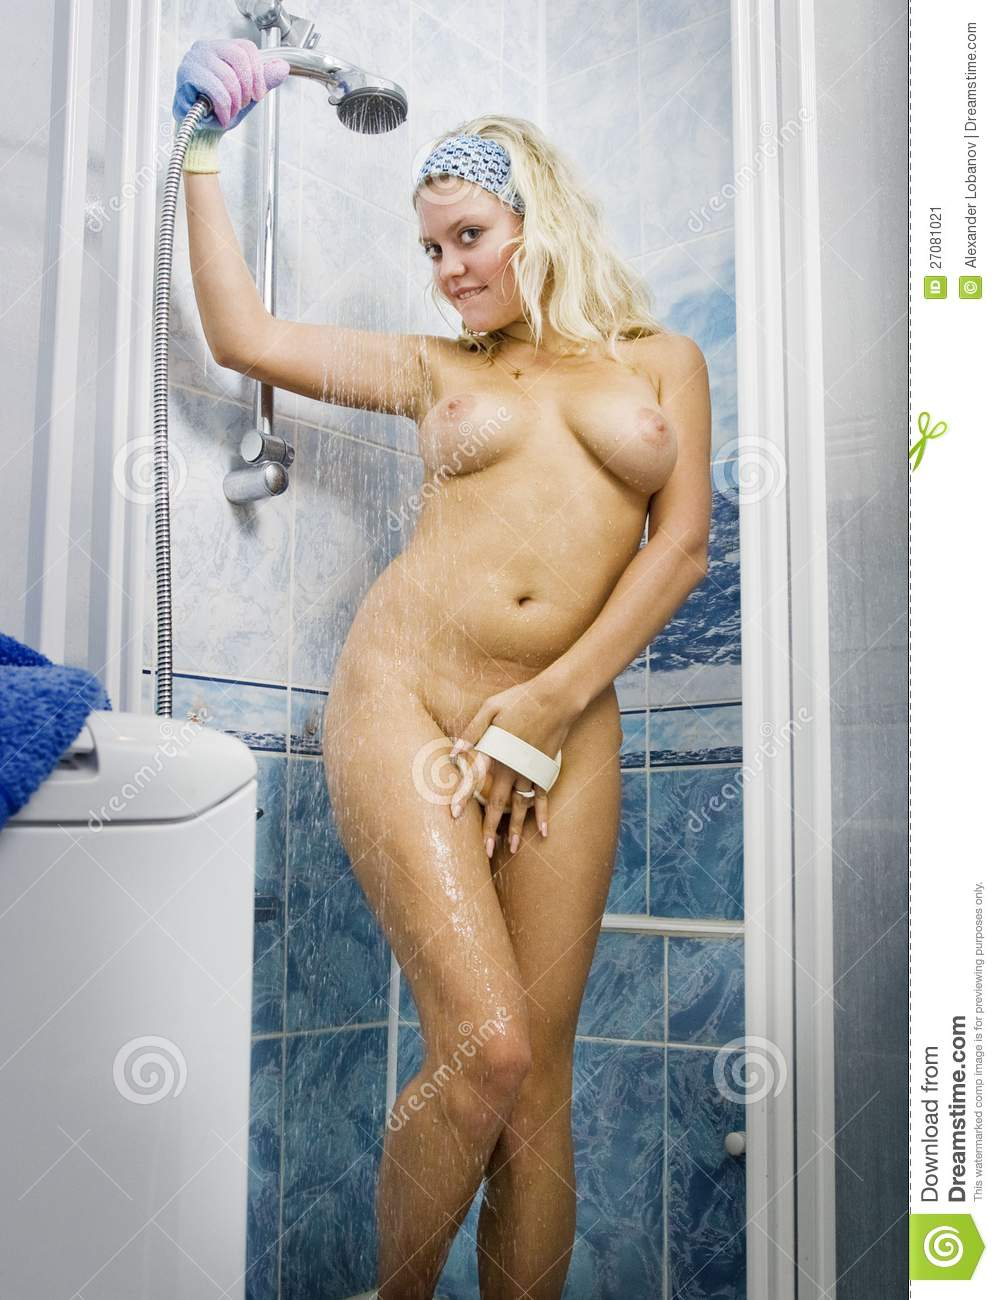 Shower sex girls in the naked having